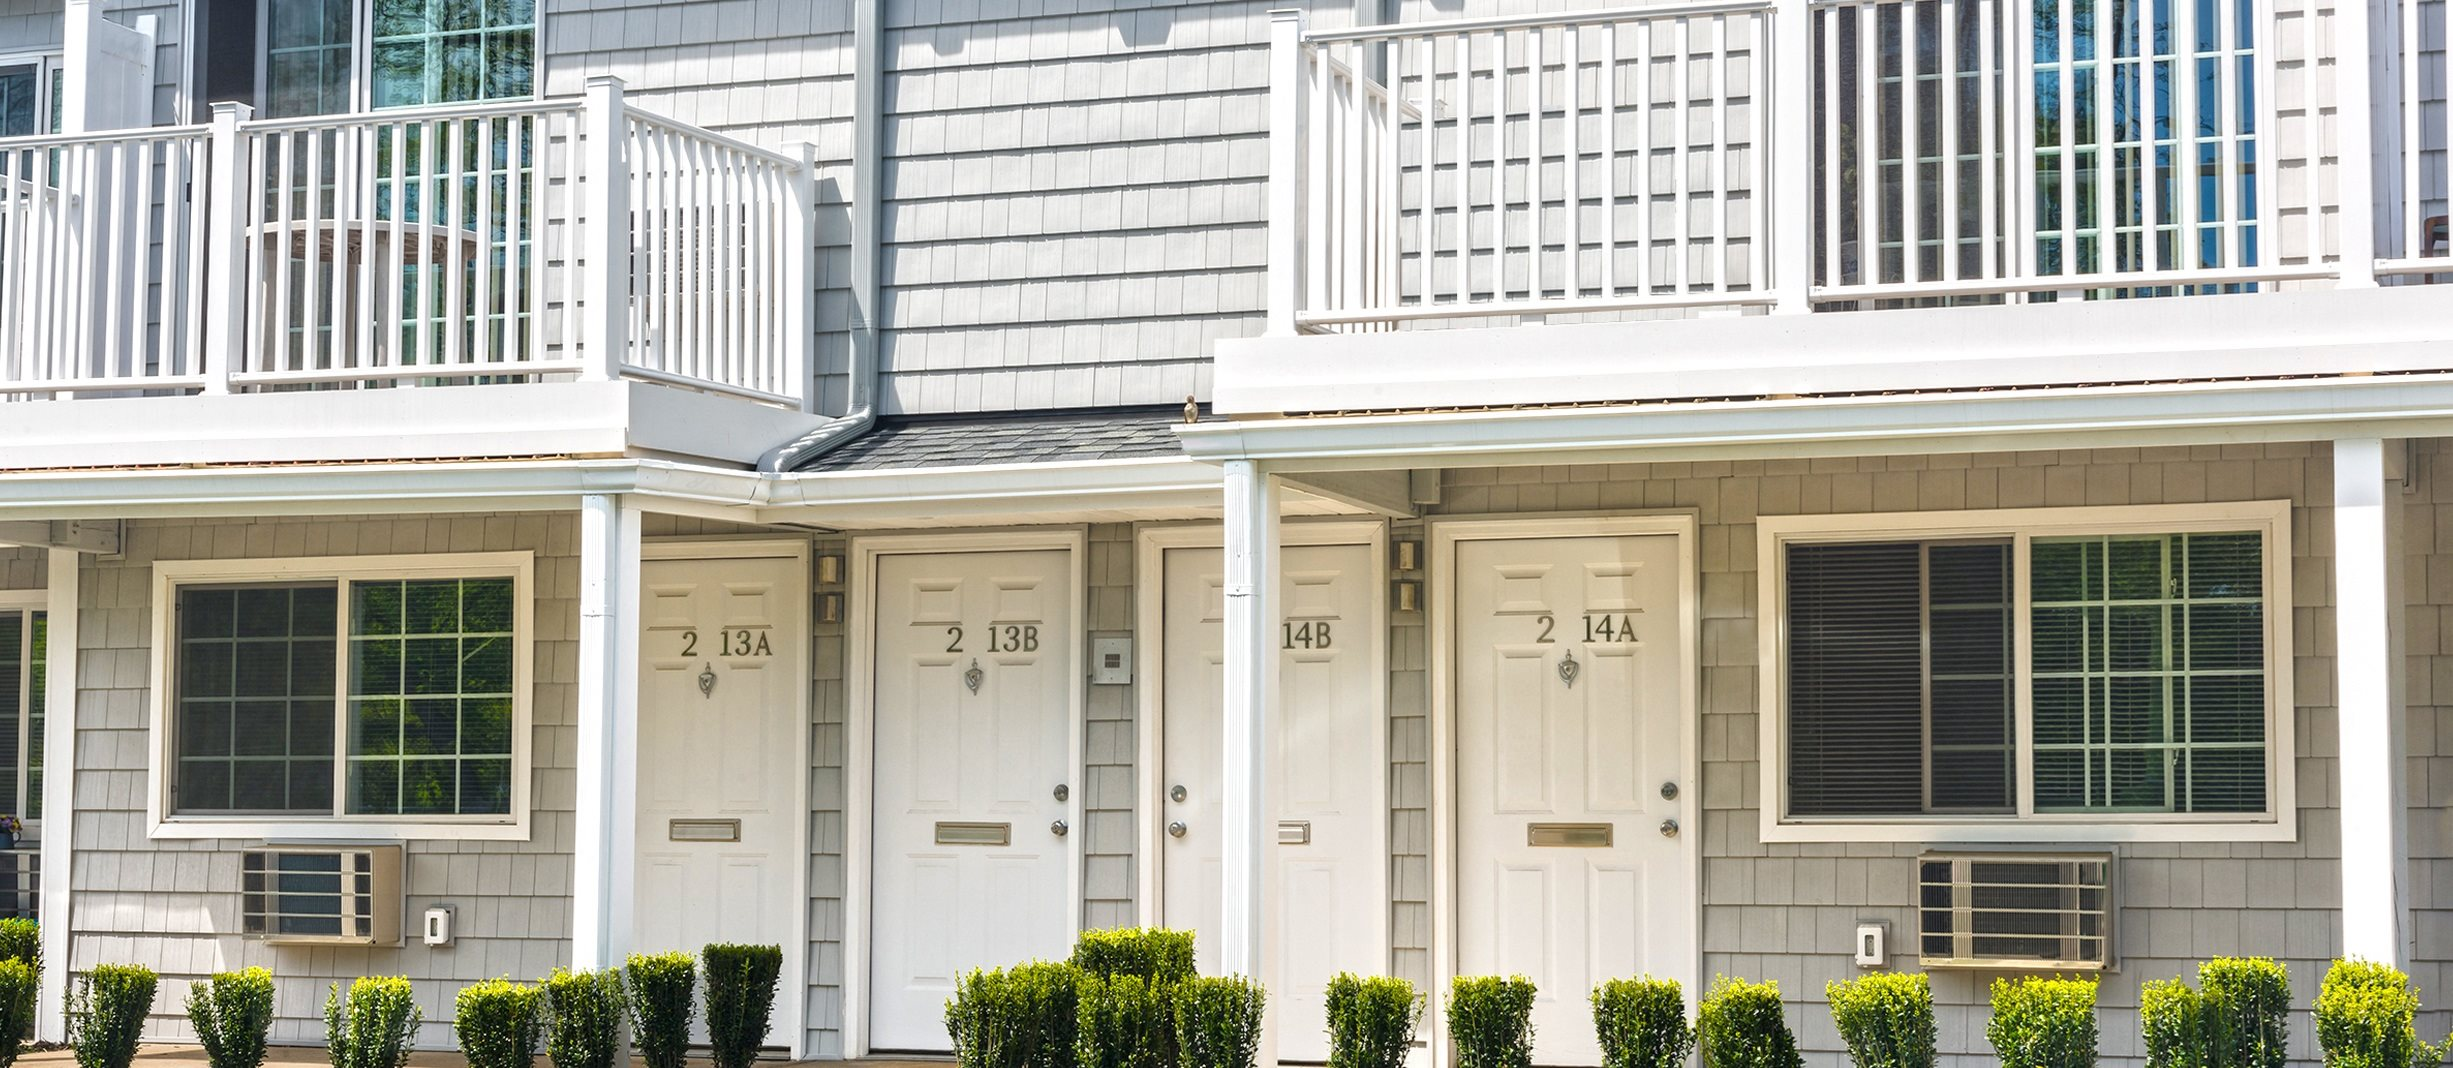 Bedroom Apartments For Rent In Amityville